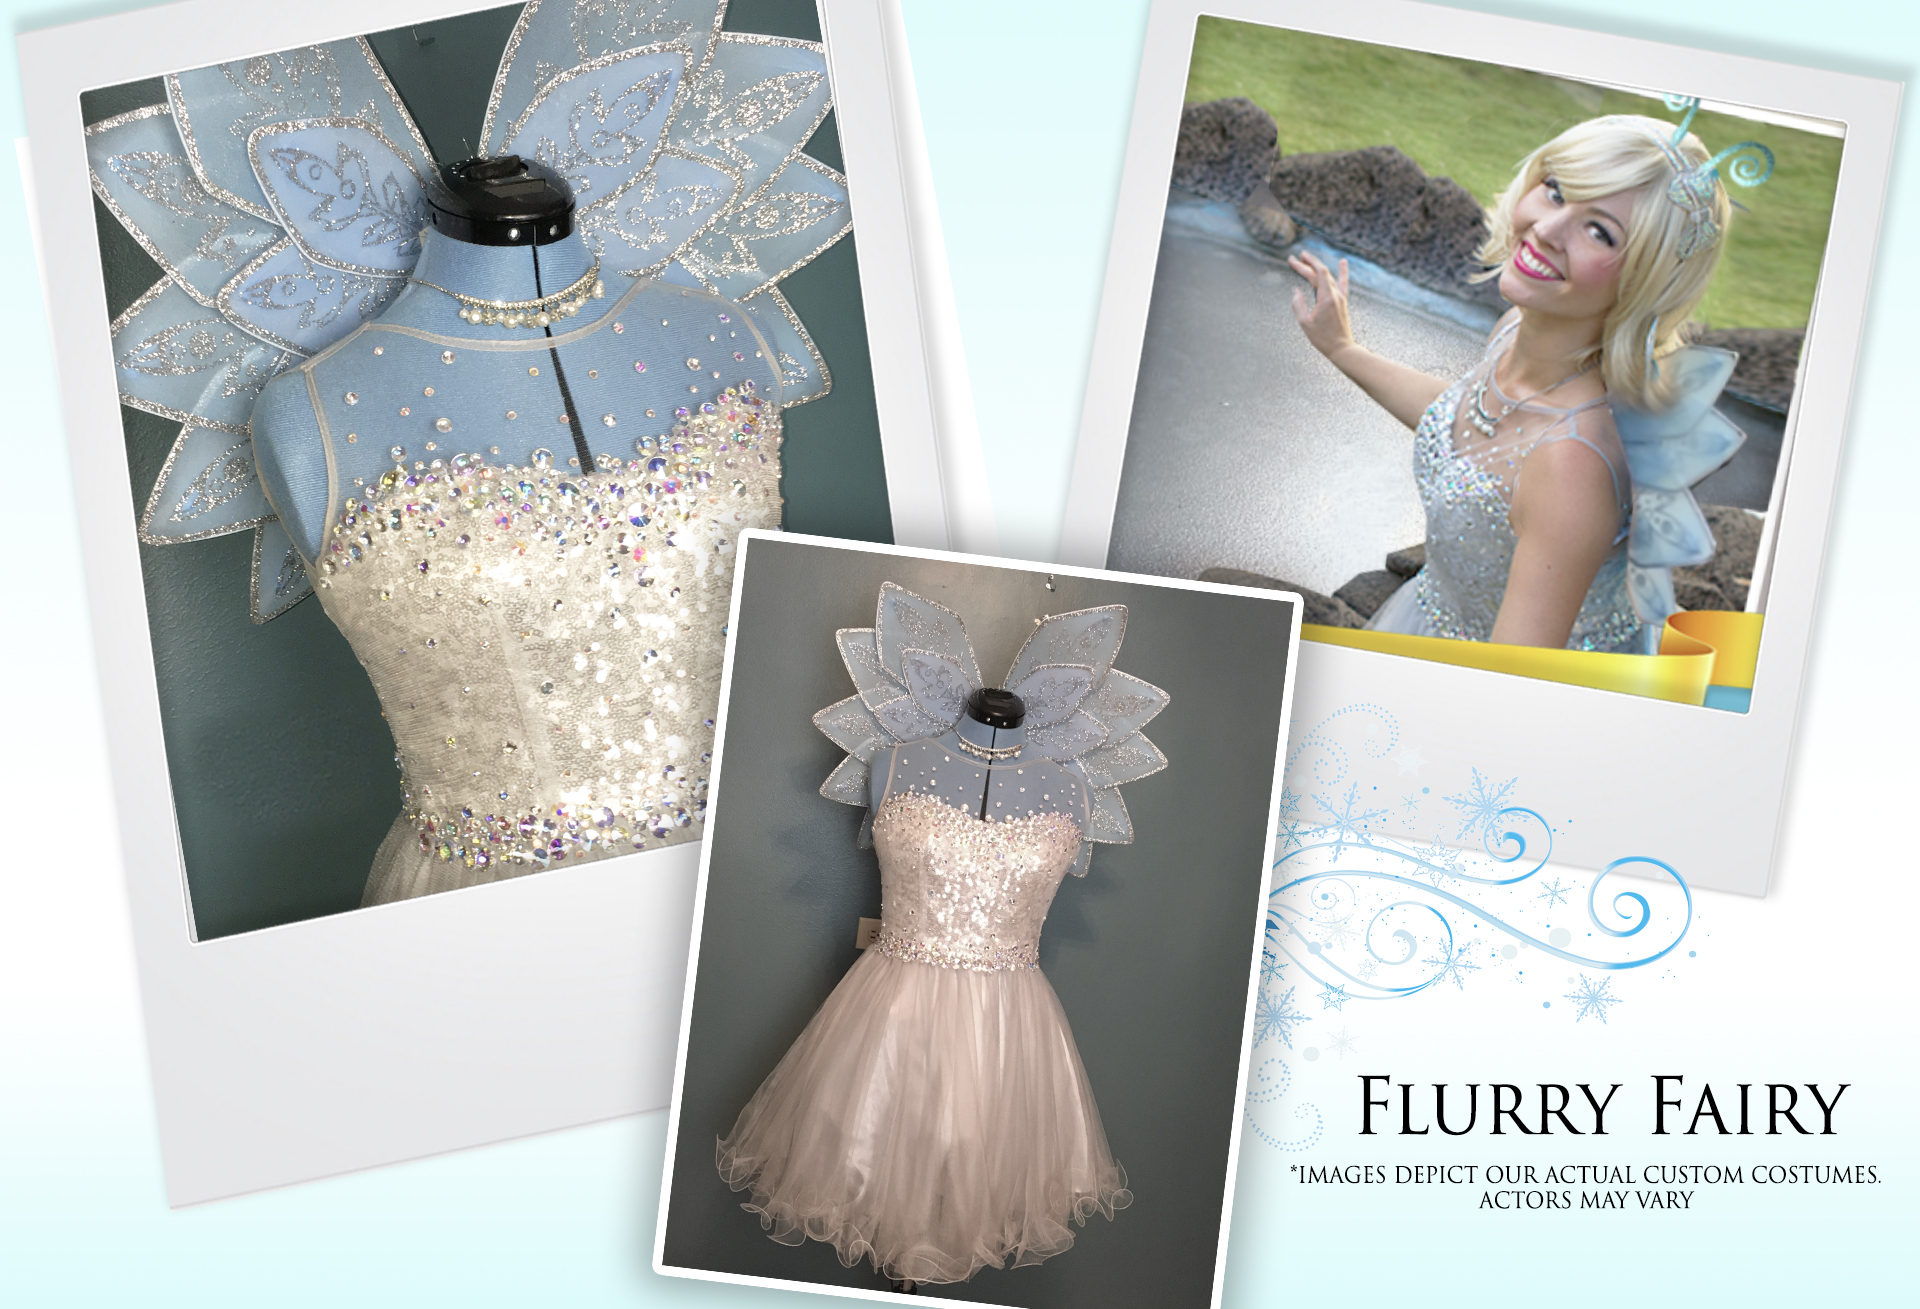 Flurry Fairy